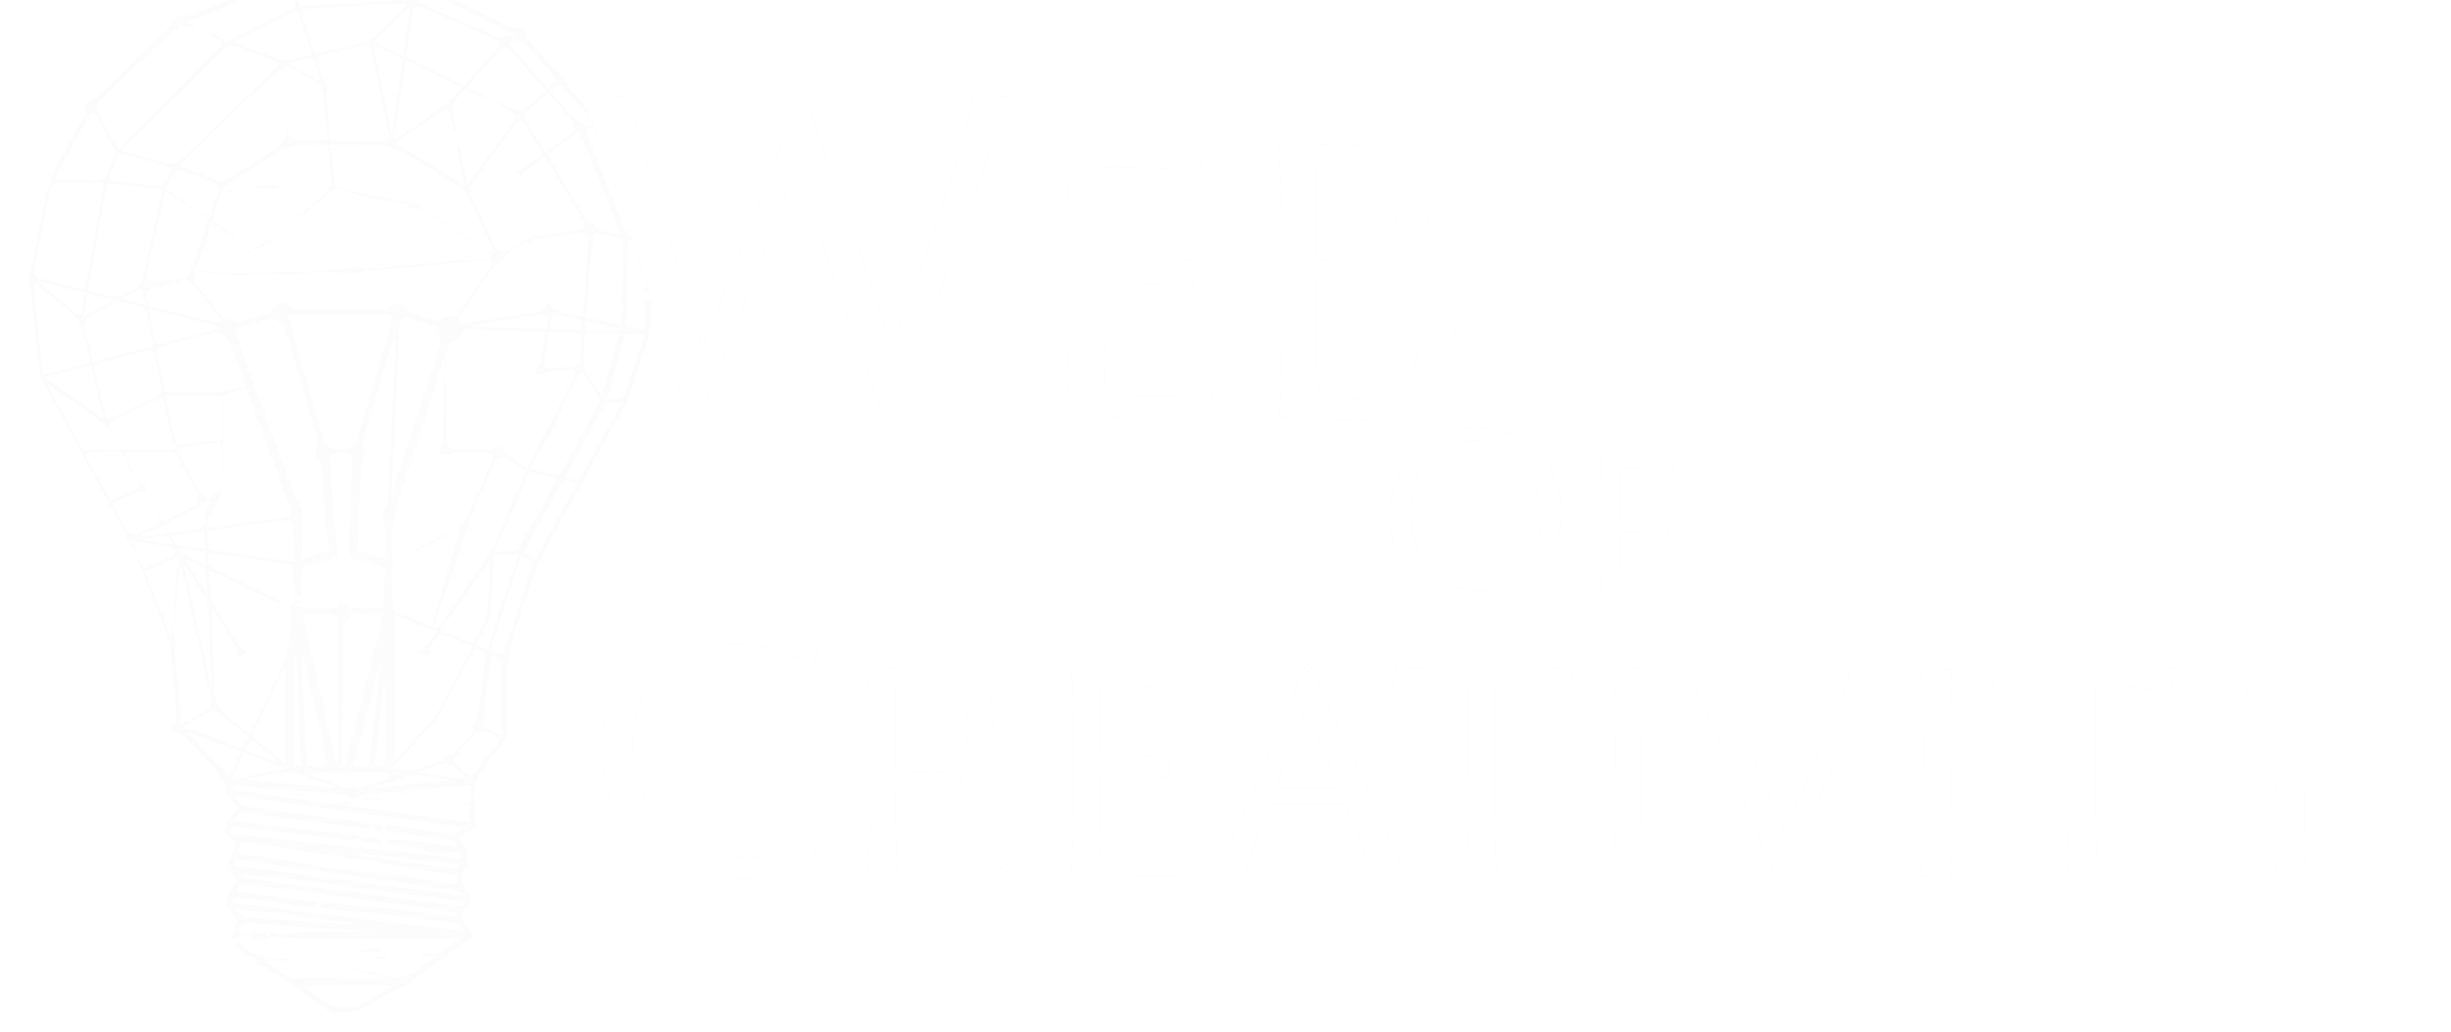 Web of Creativity